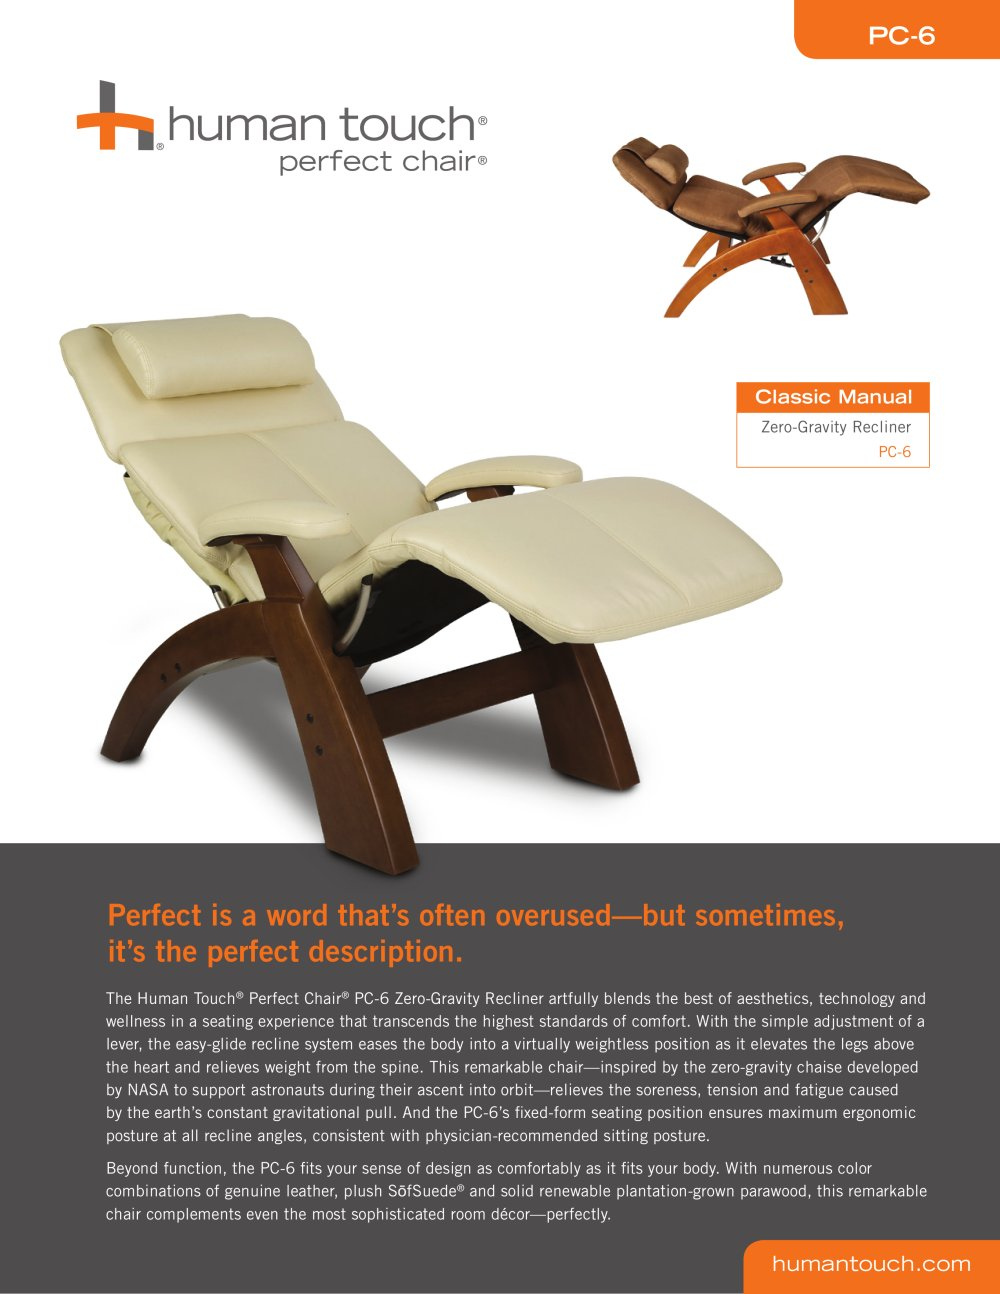 Perfect Chair ReclinersPC-6 Perfect Chair Classic Manual Zero-Gravity - 1 / 2 Pages  sc 1 st  Catalogues Archiexpo & Perfect Chair Recliners:PC-6 Perfect Chair Classic Manual Zero ... islam-shia.org